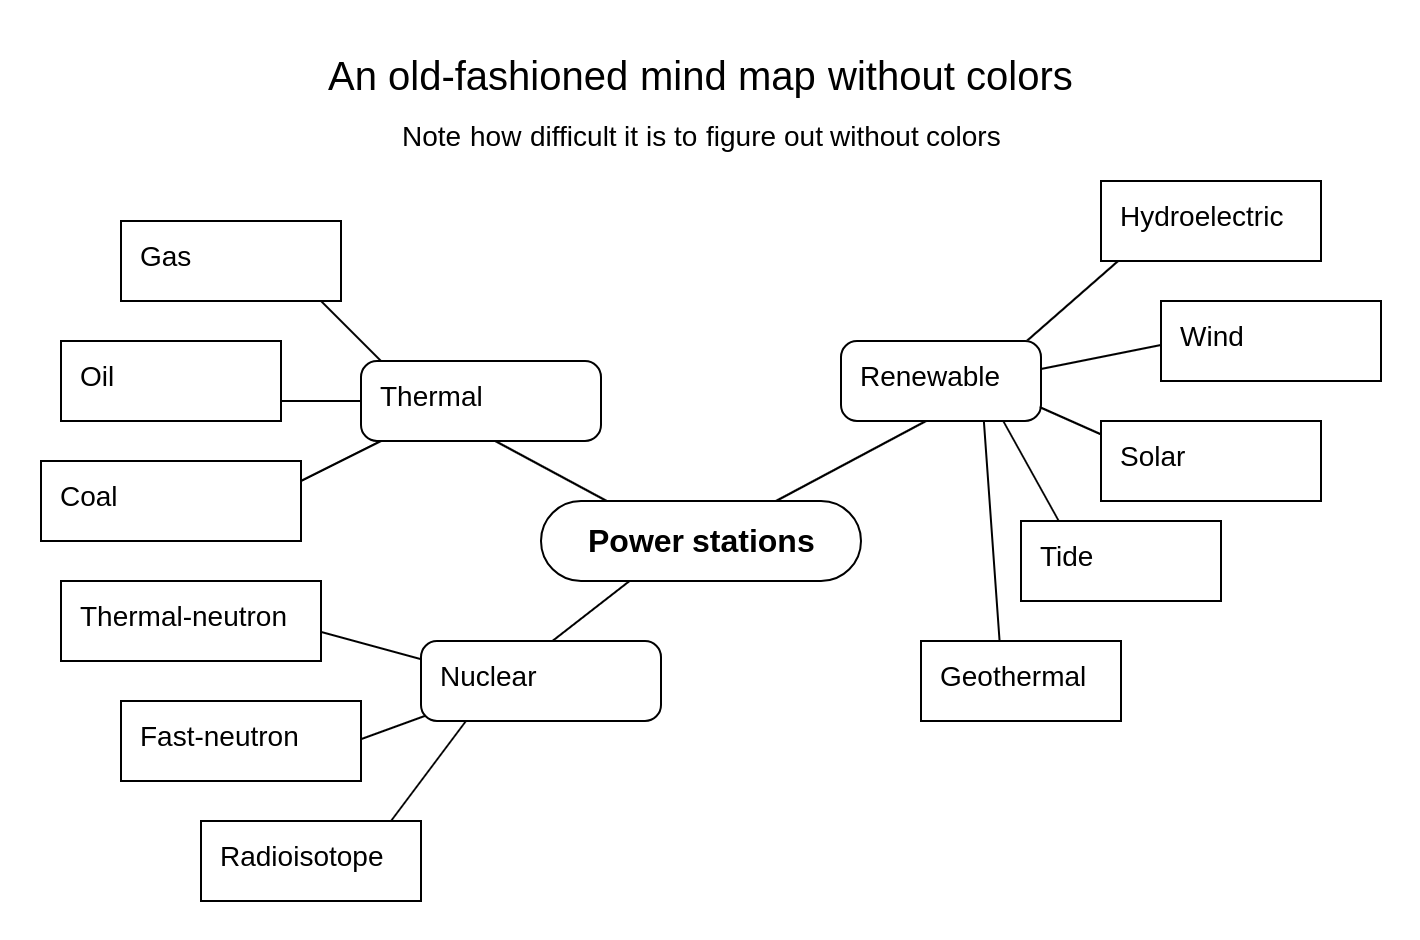 A traditional mind map without colors